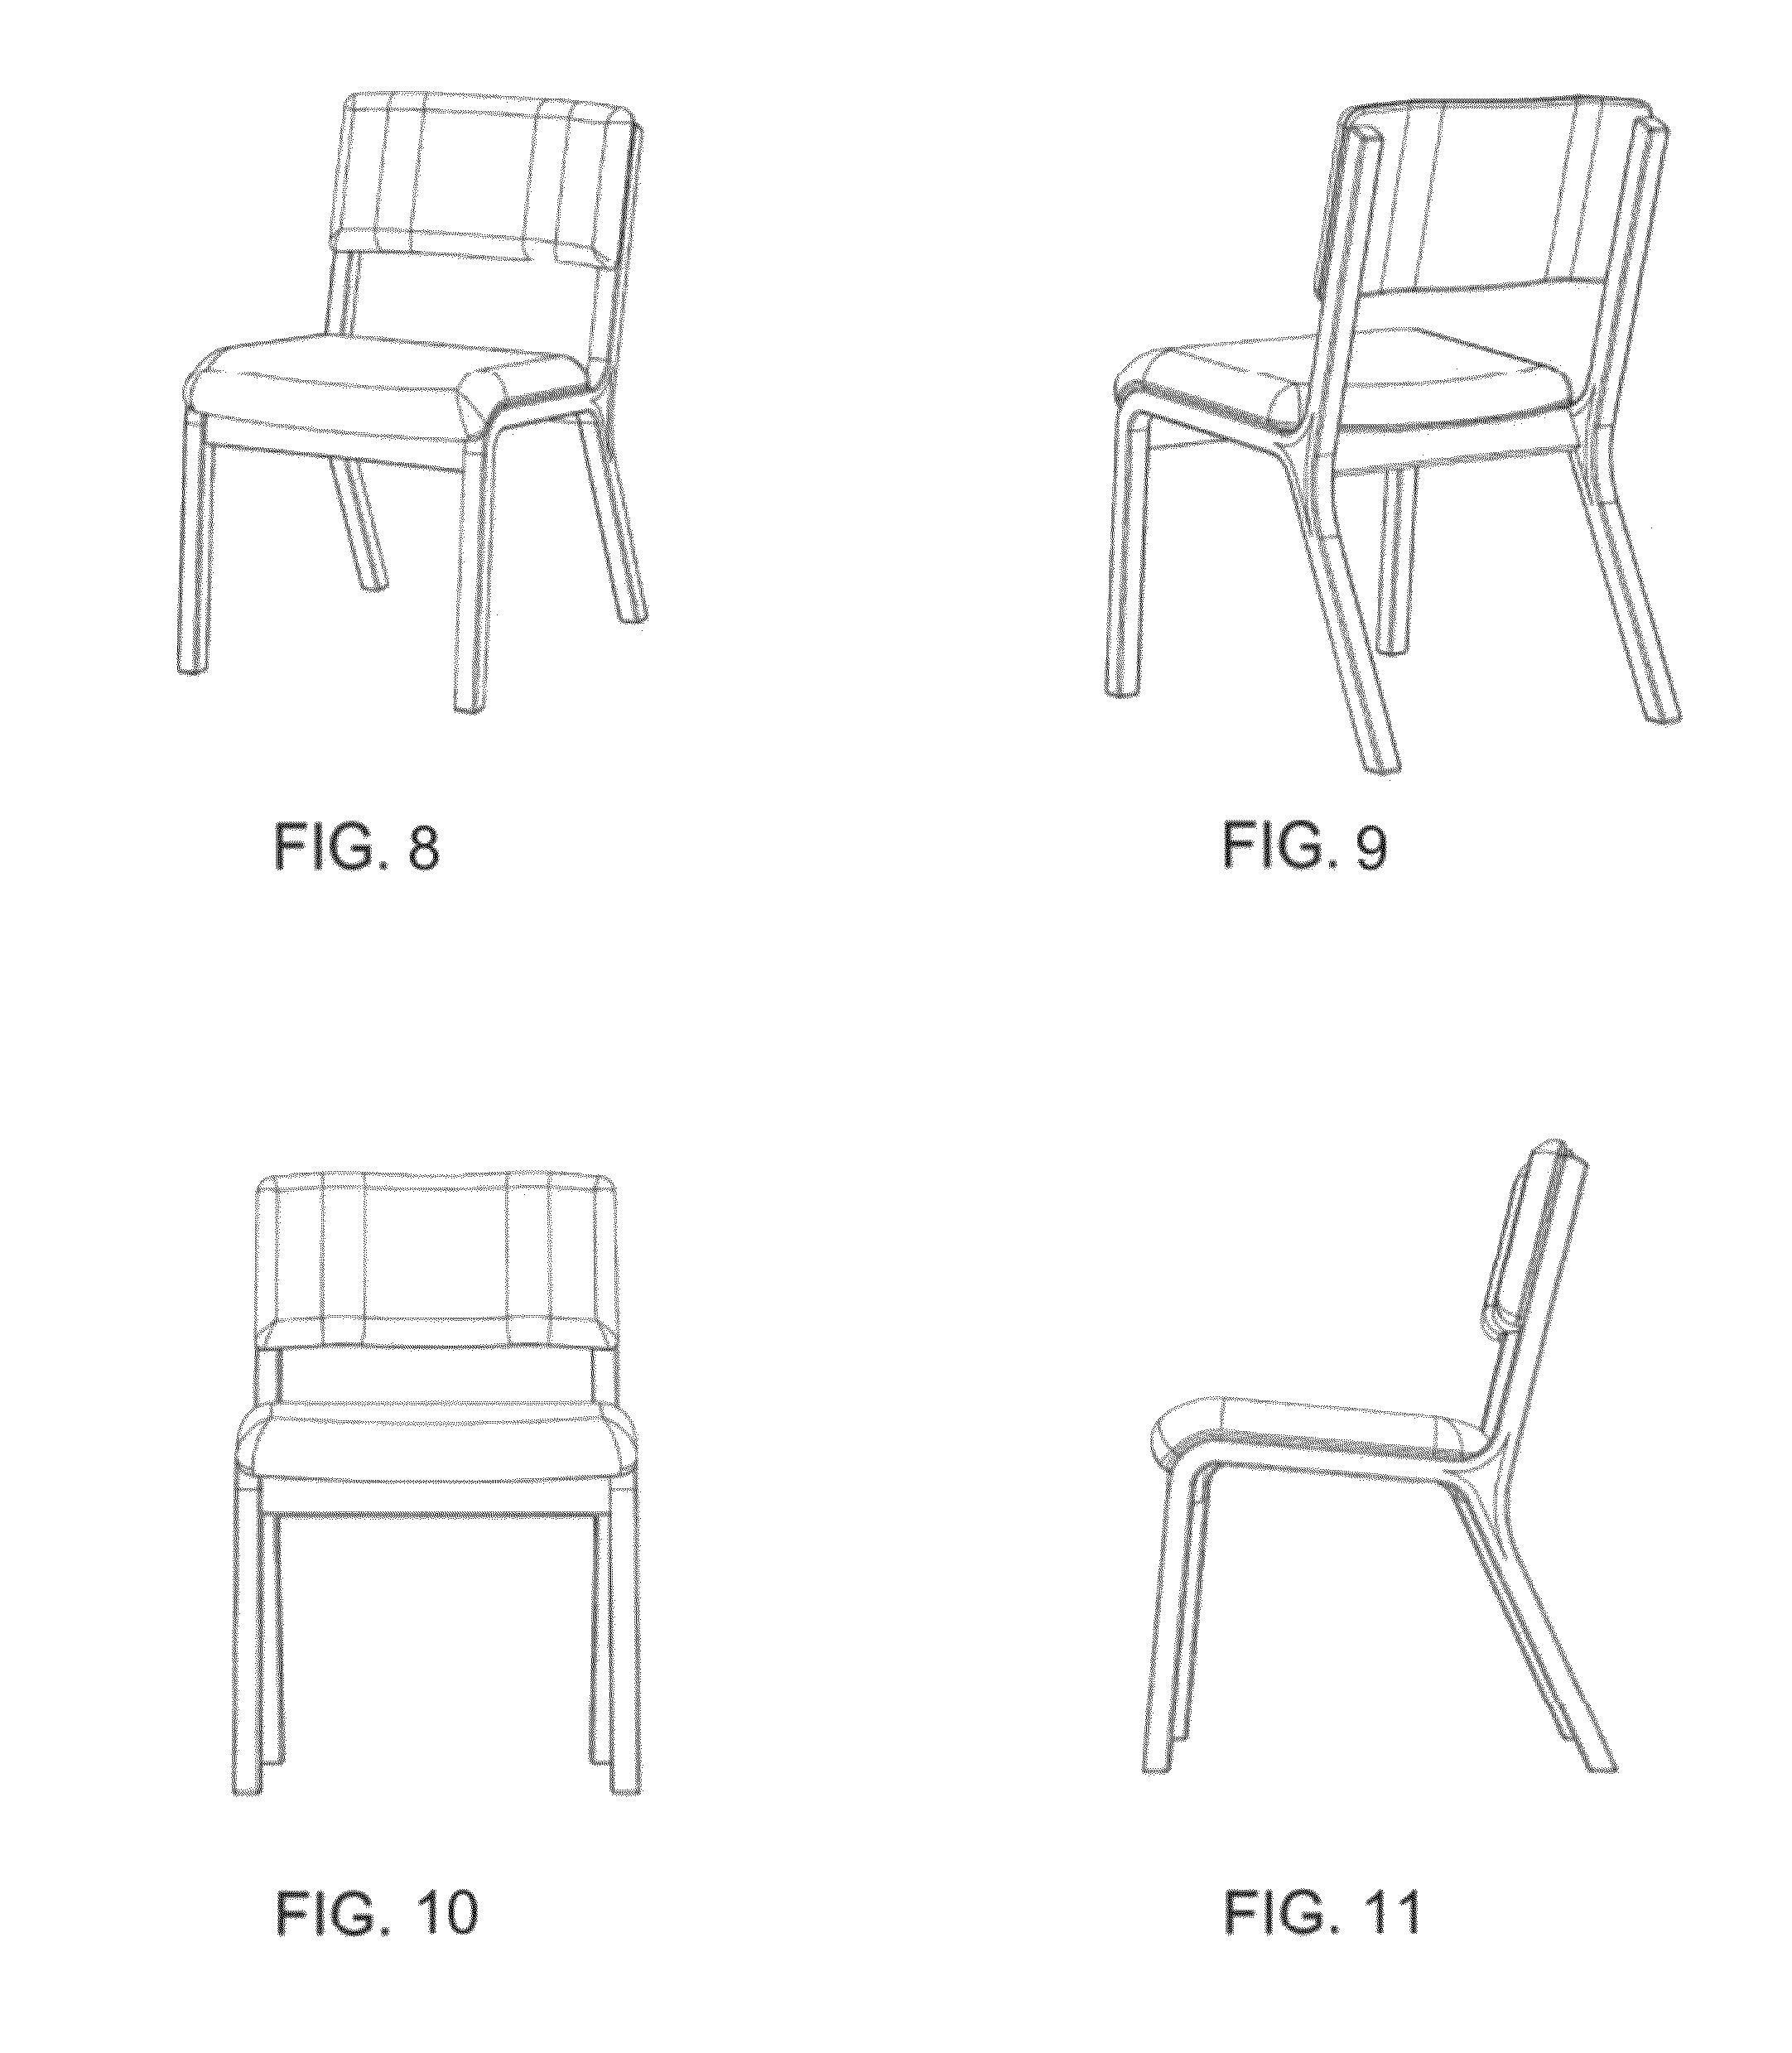 Plan Elevation Of Chair : Chair elevation drawing pictures to pin on pinterest